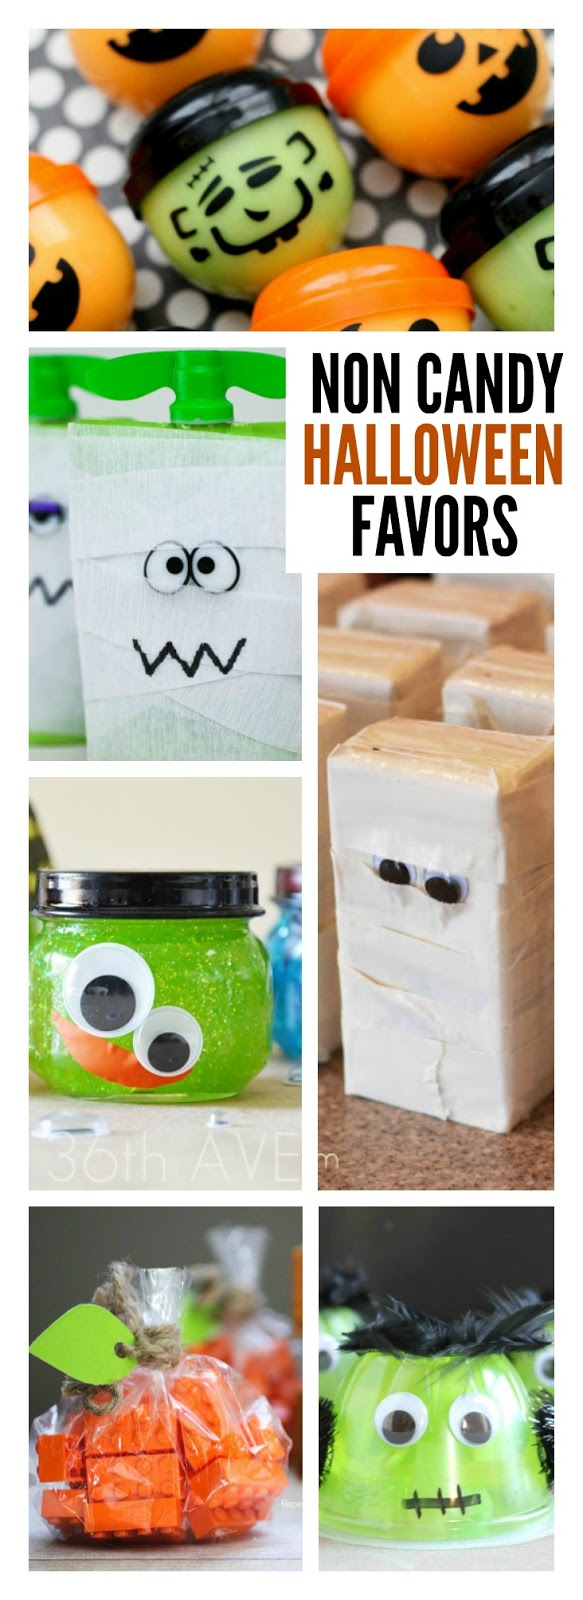 35 NON CANDY HALLOWEEN PARTY FAVORS FOR KIDS- so many creative ideas!